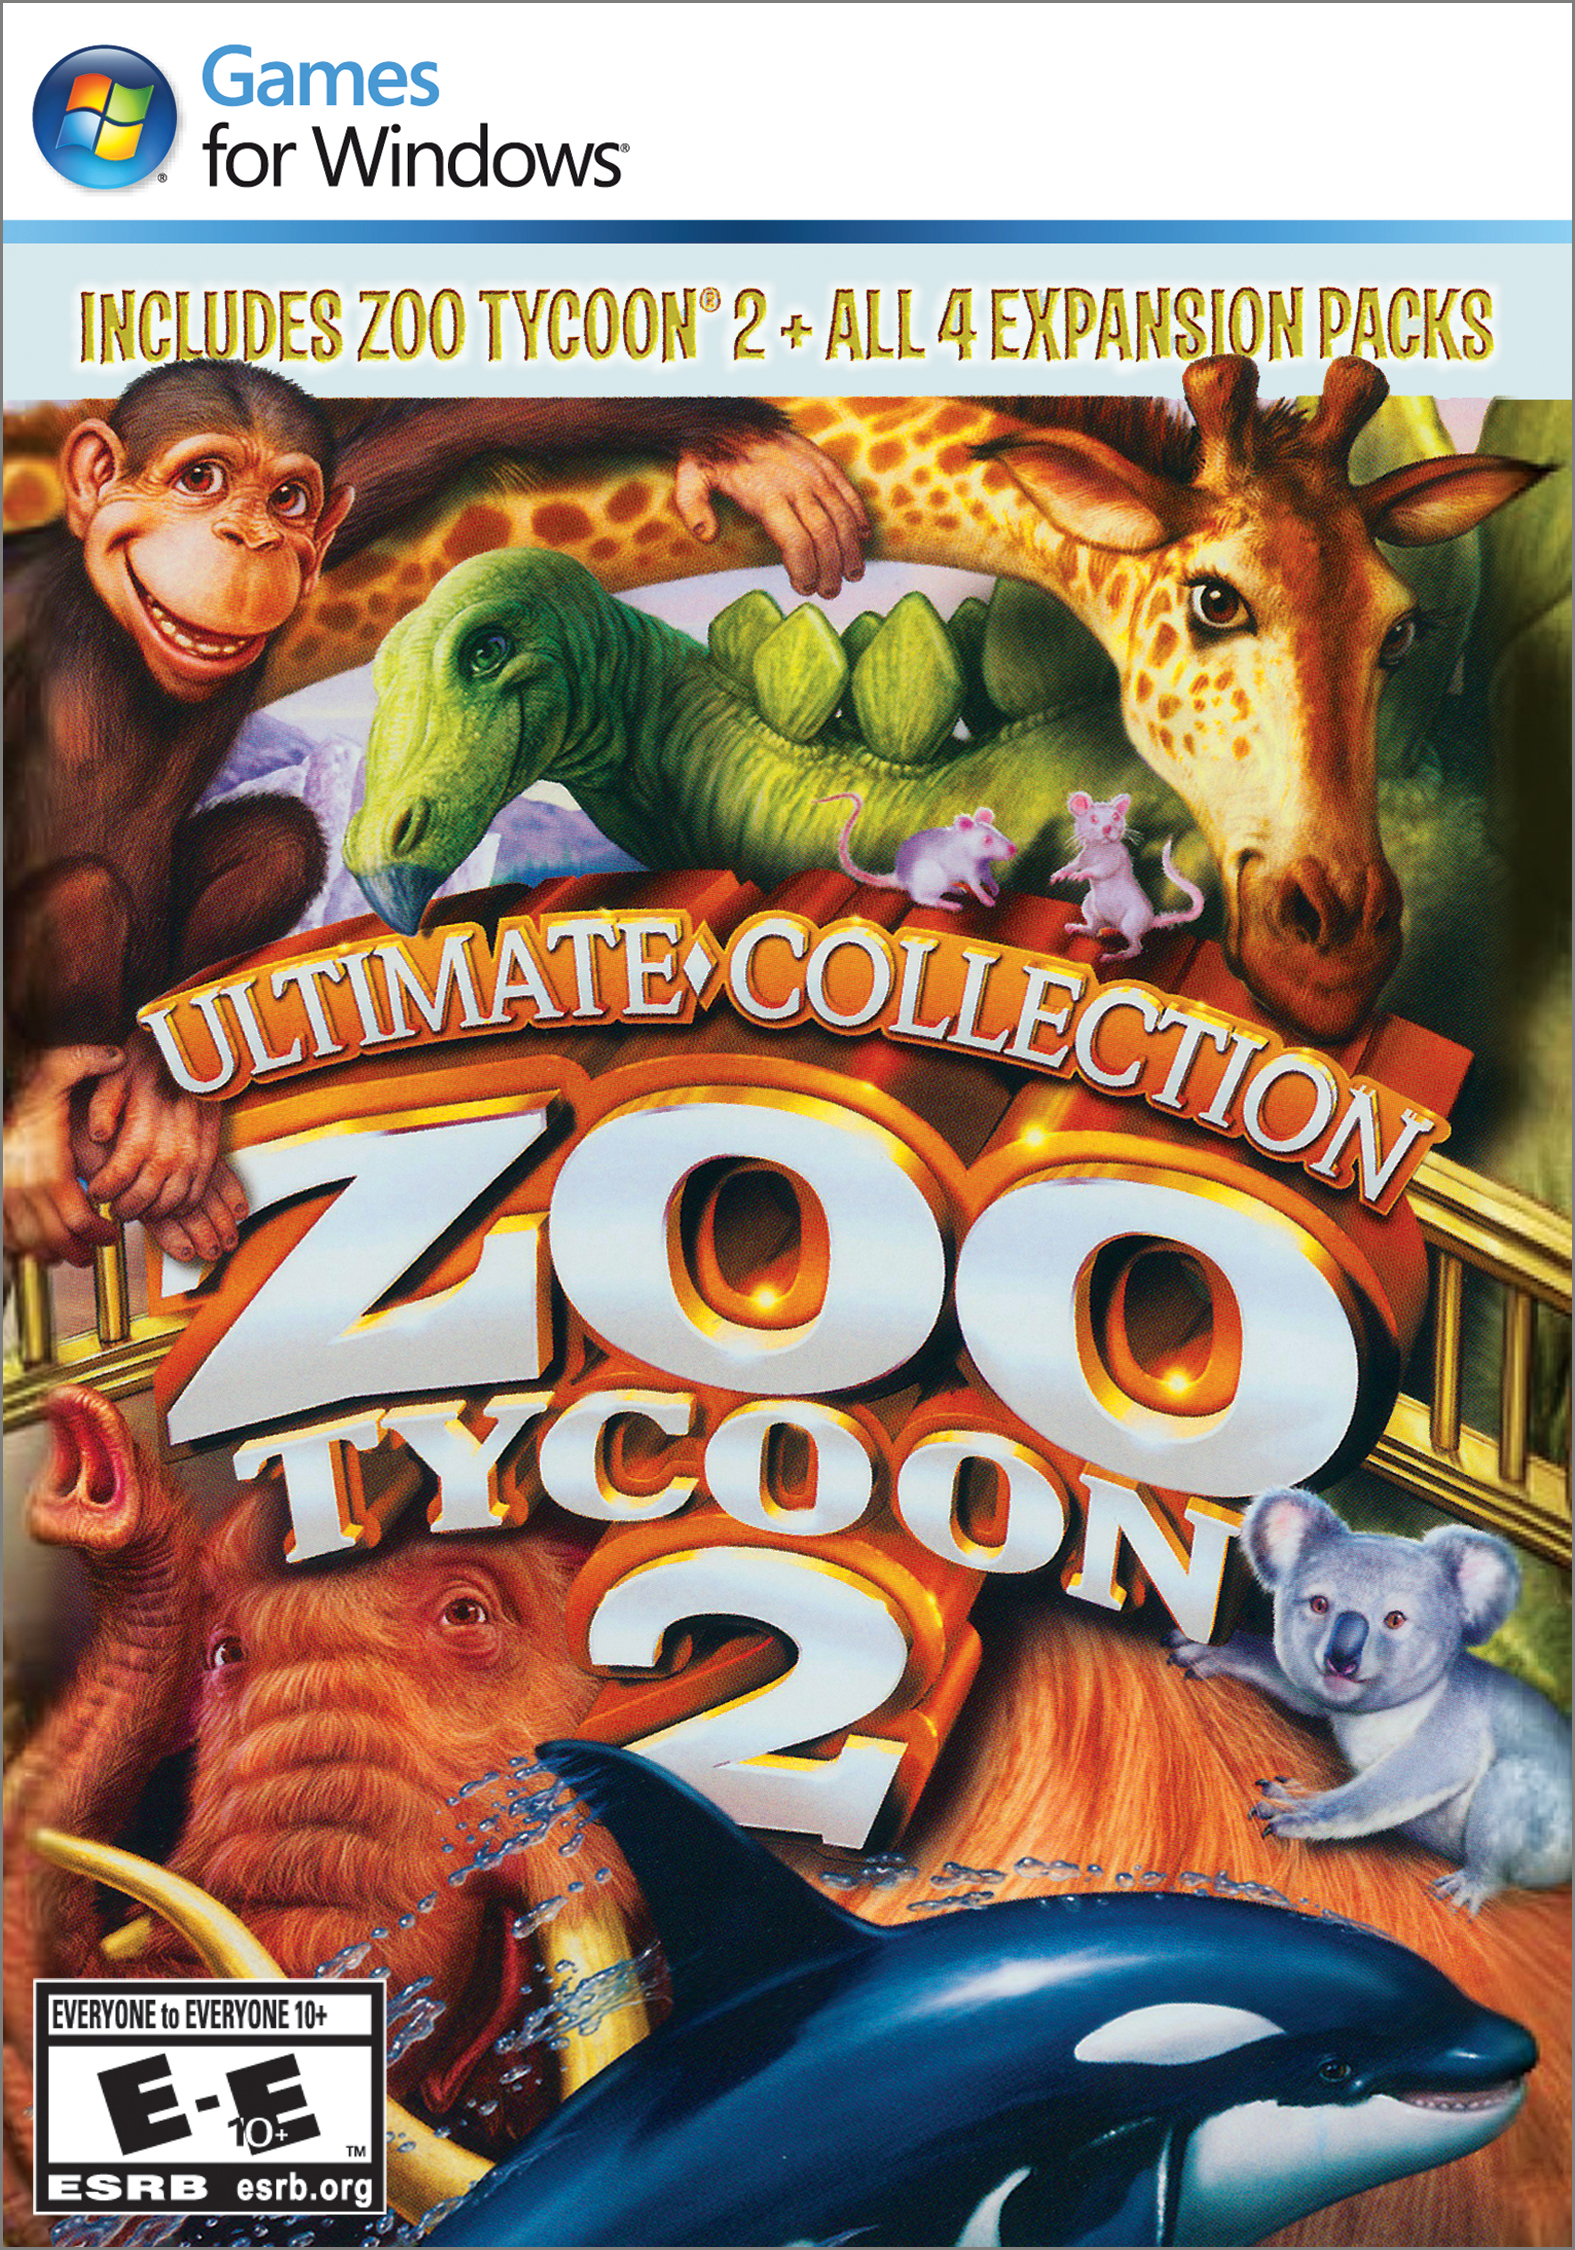 Zoo tycoon mac torrent crack - zoo tycoon mac torrent crack file